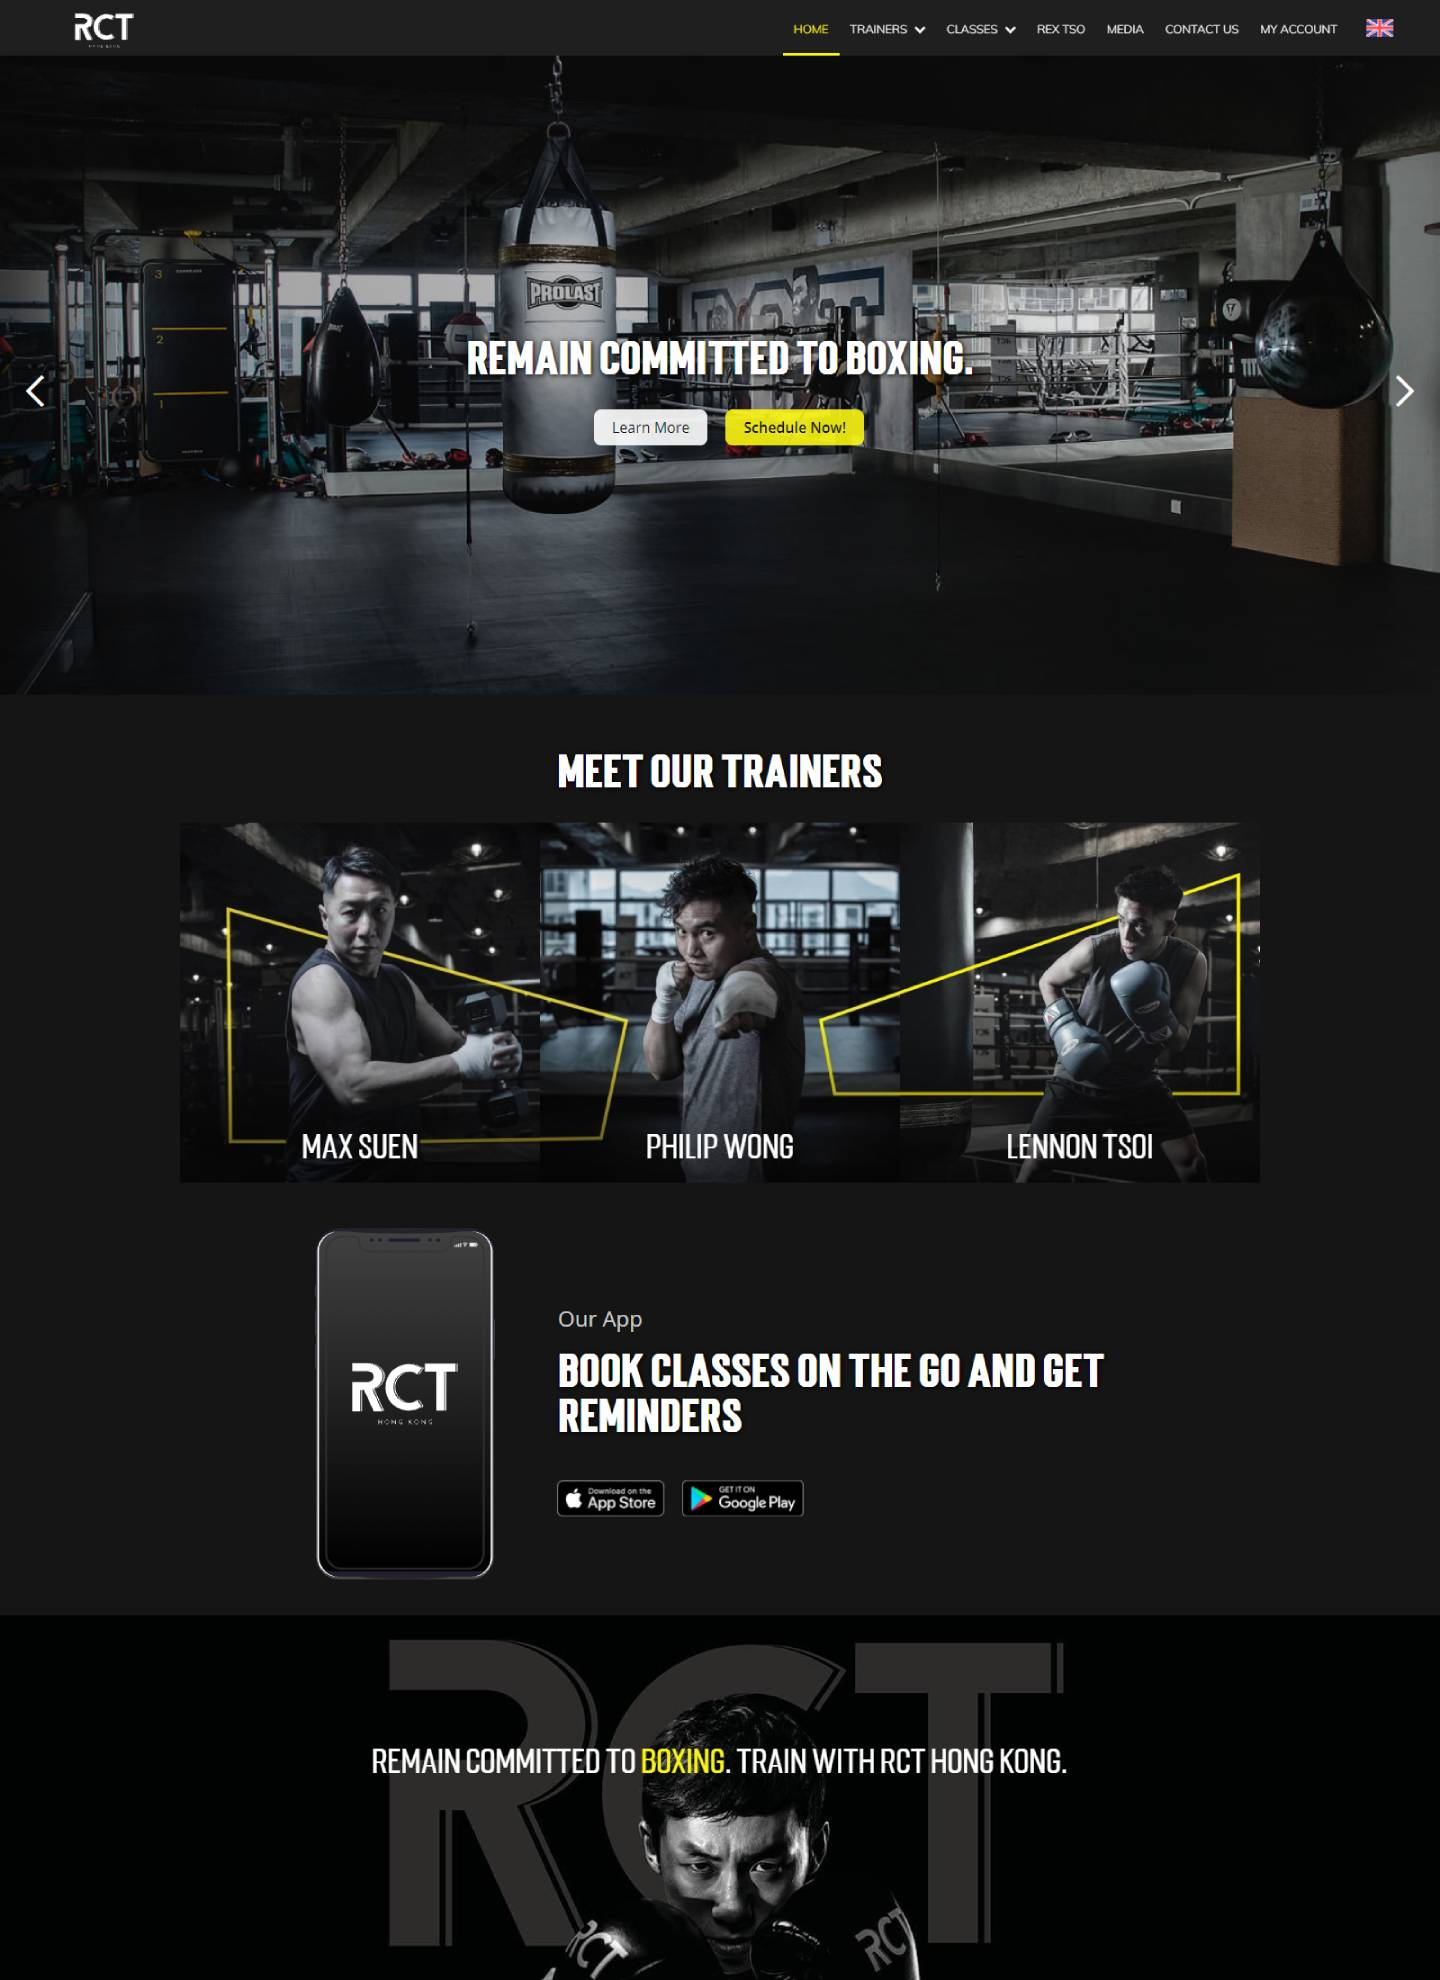 Screenshot of rct.com.hk, homepage web design for Remain Committed to Boxing Hong Kong.